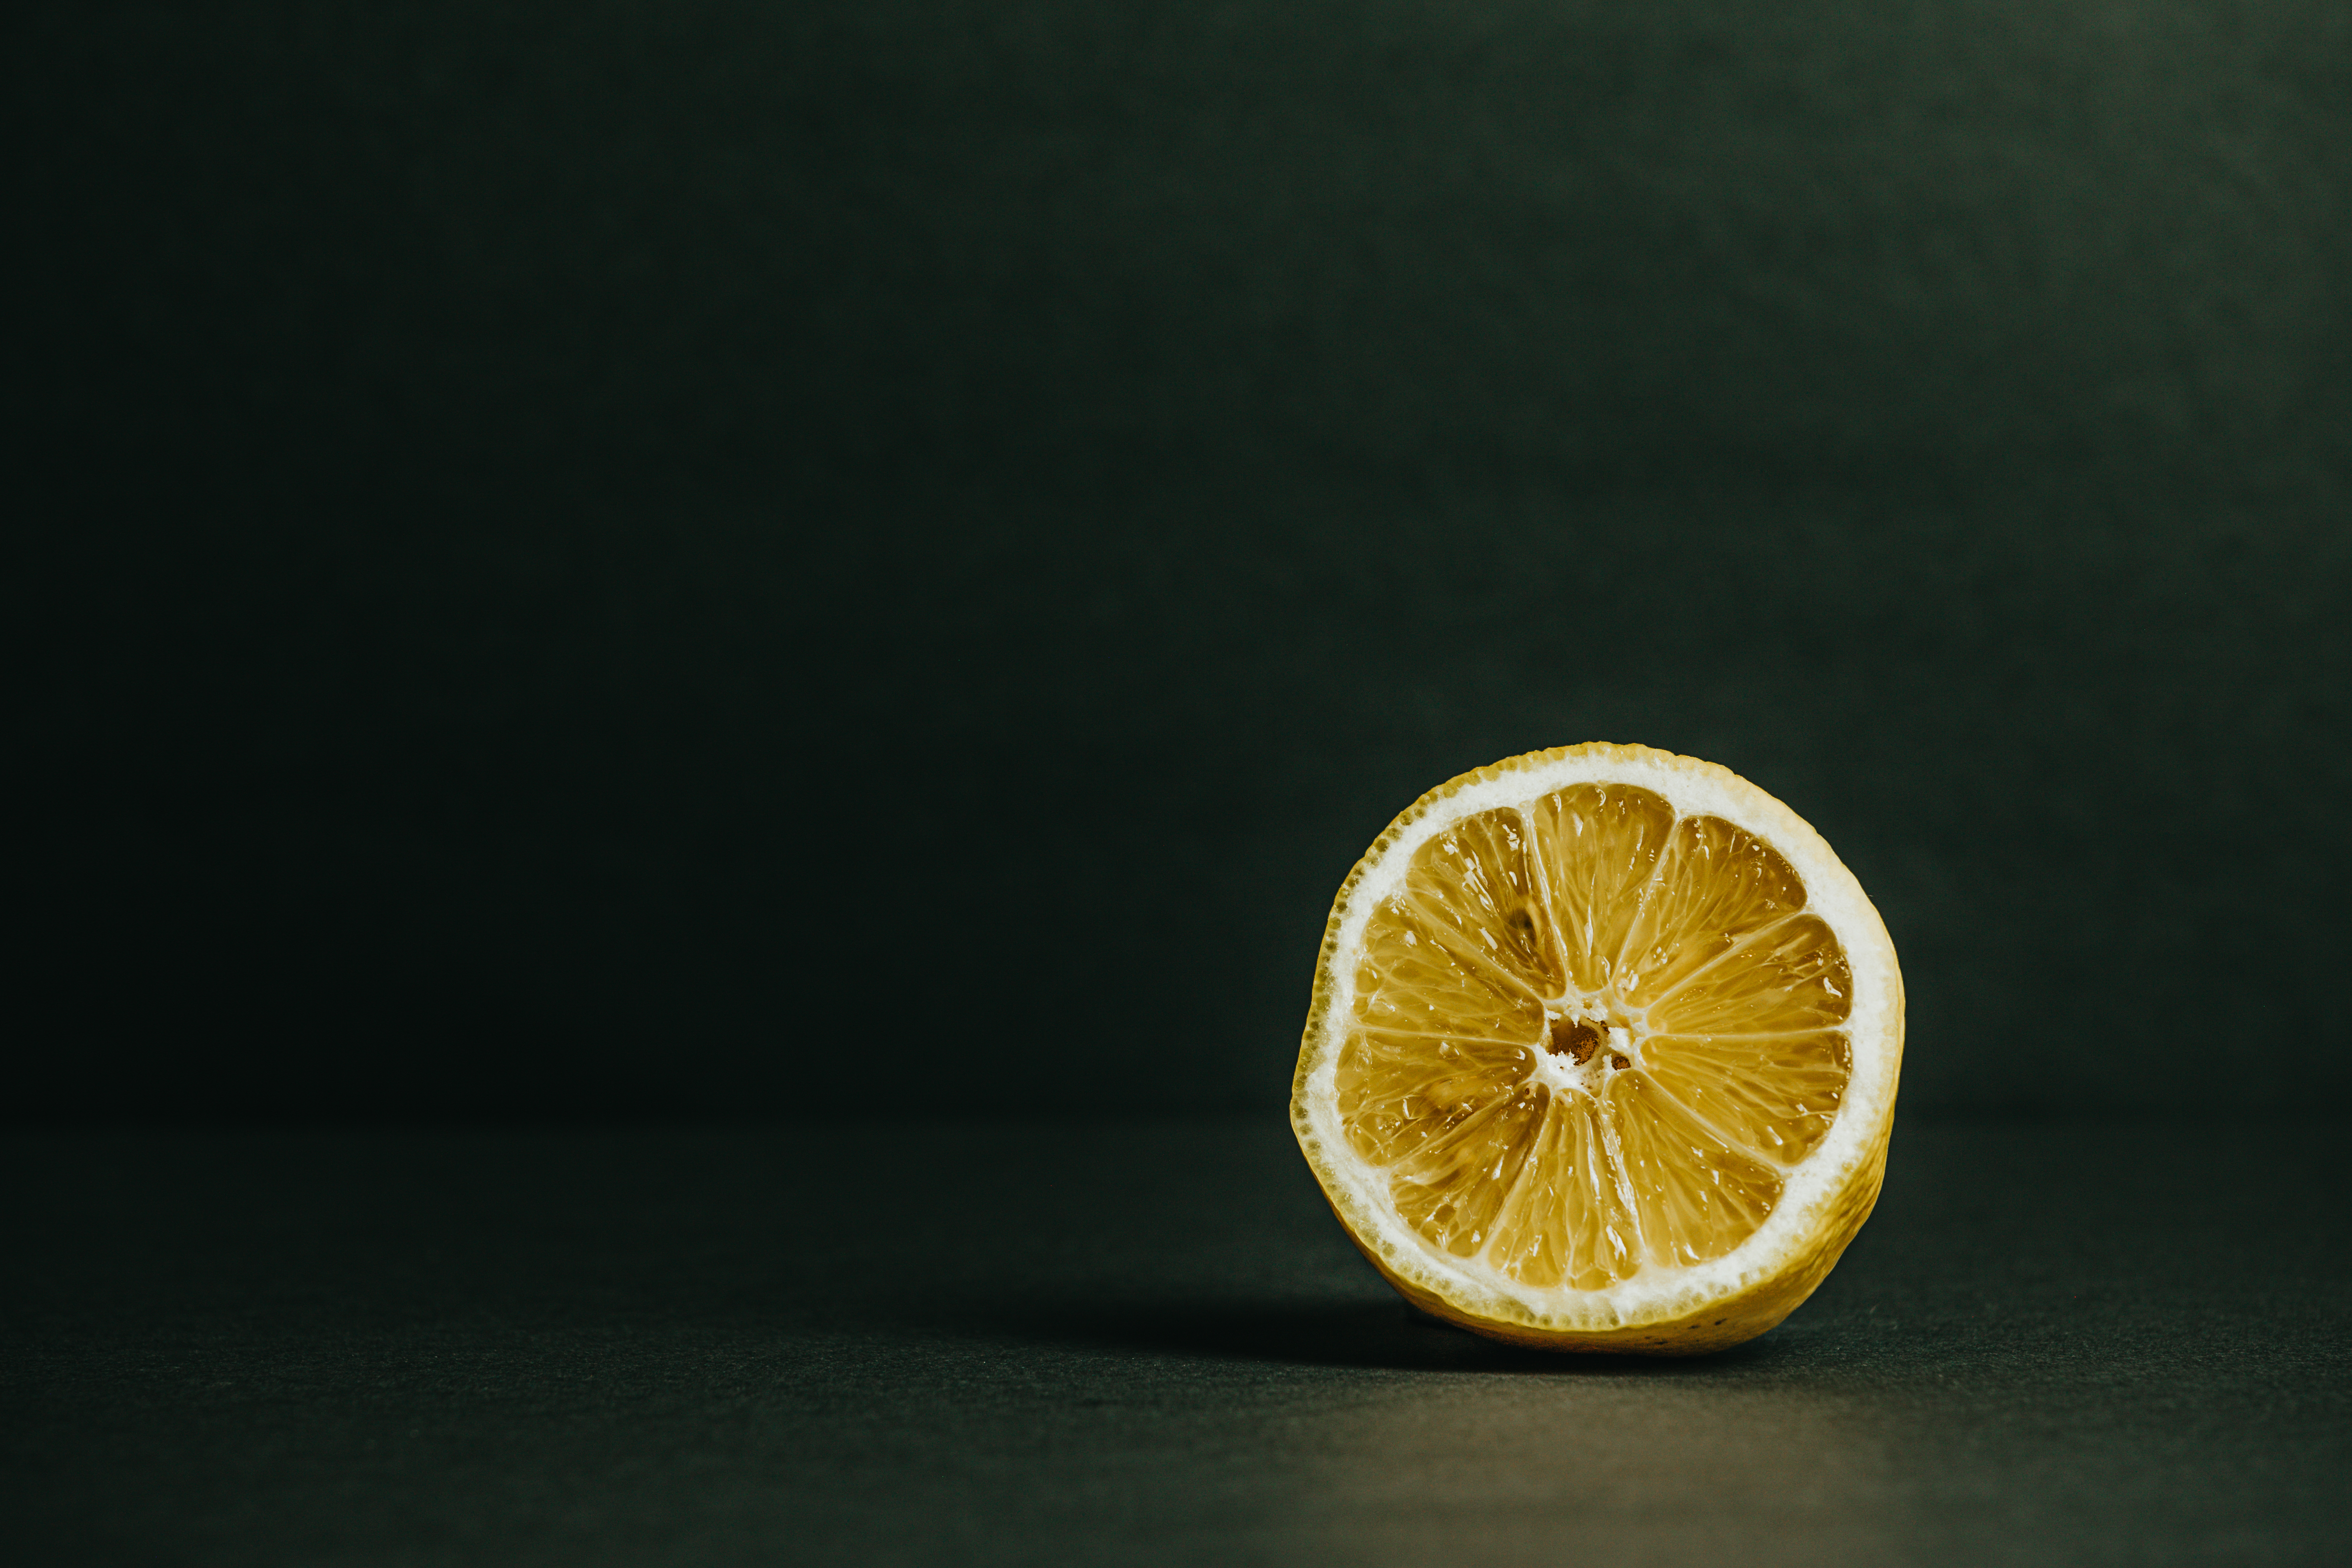 Half of a lemon on a green background